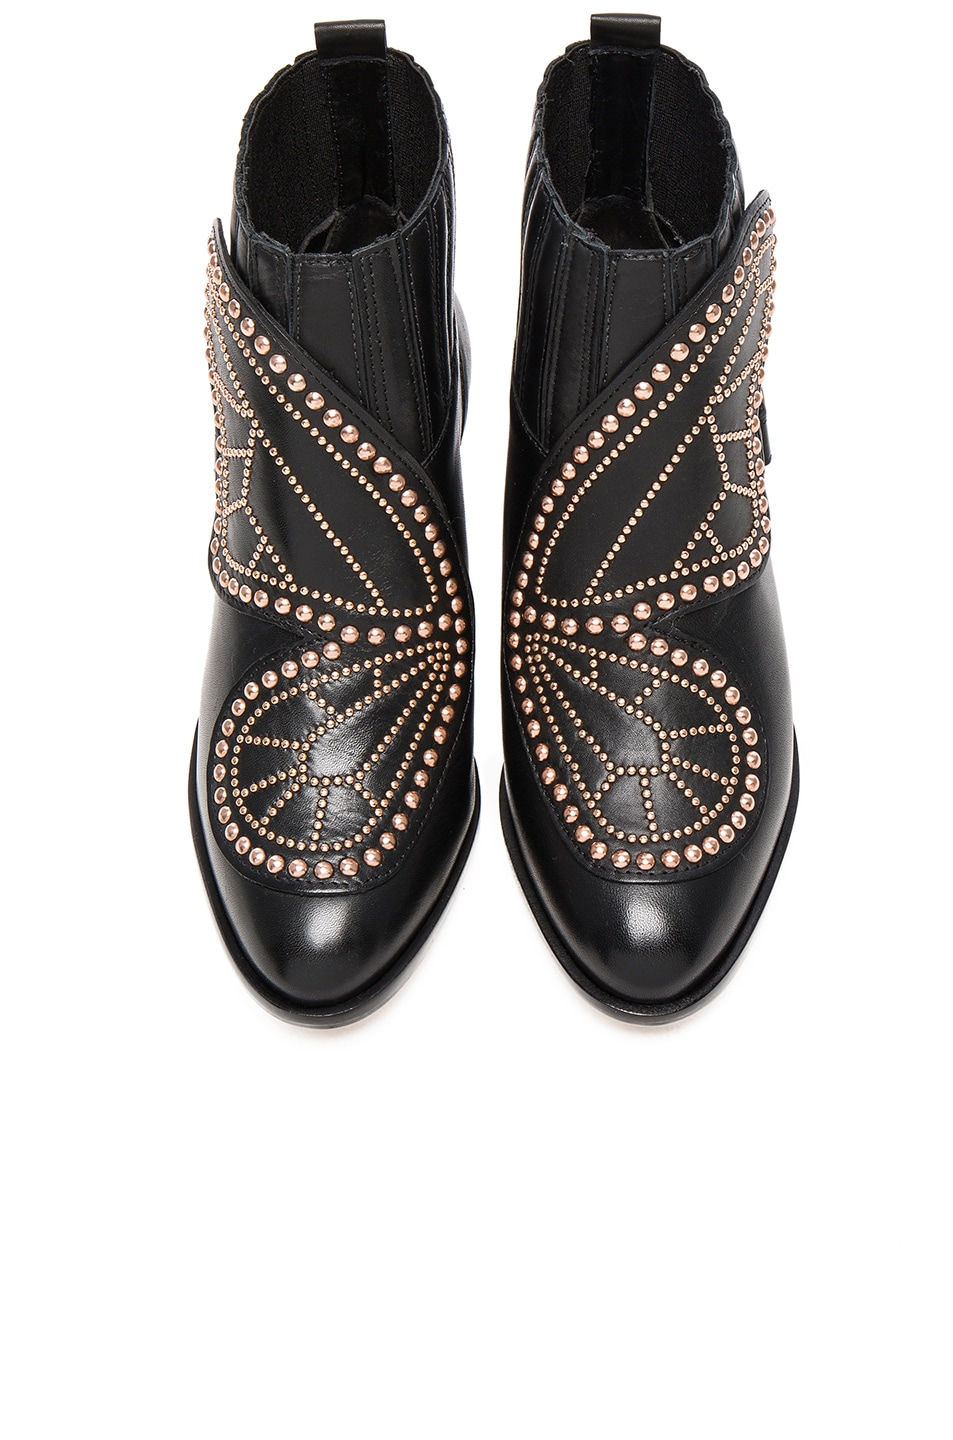 Image 1 of Sophia Webster Karina Butterfly Boots in Black